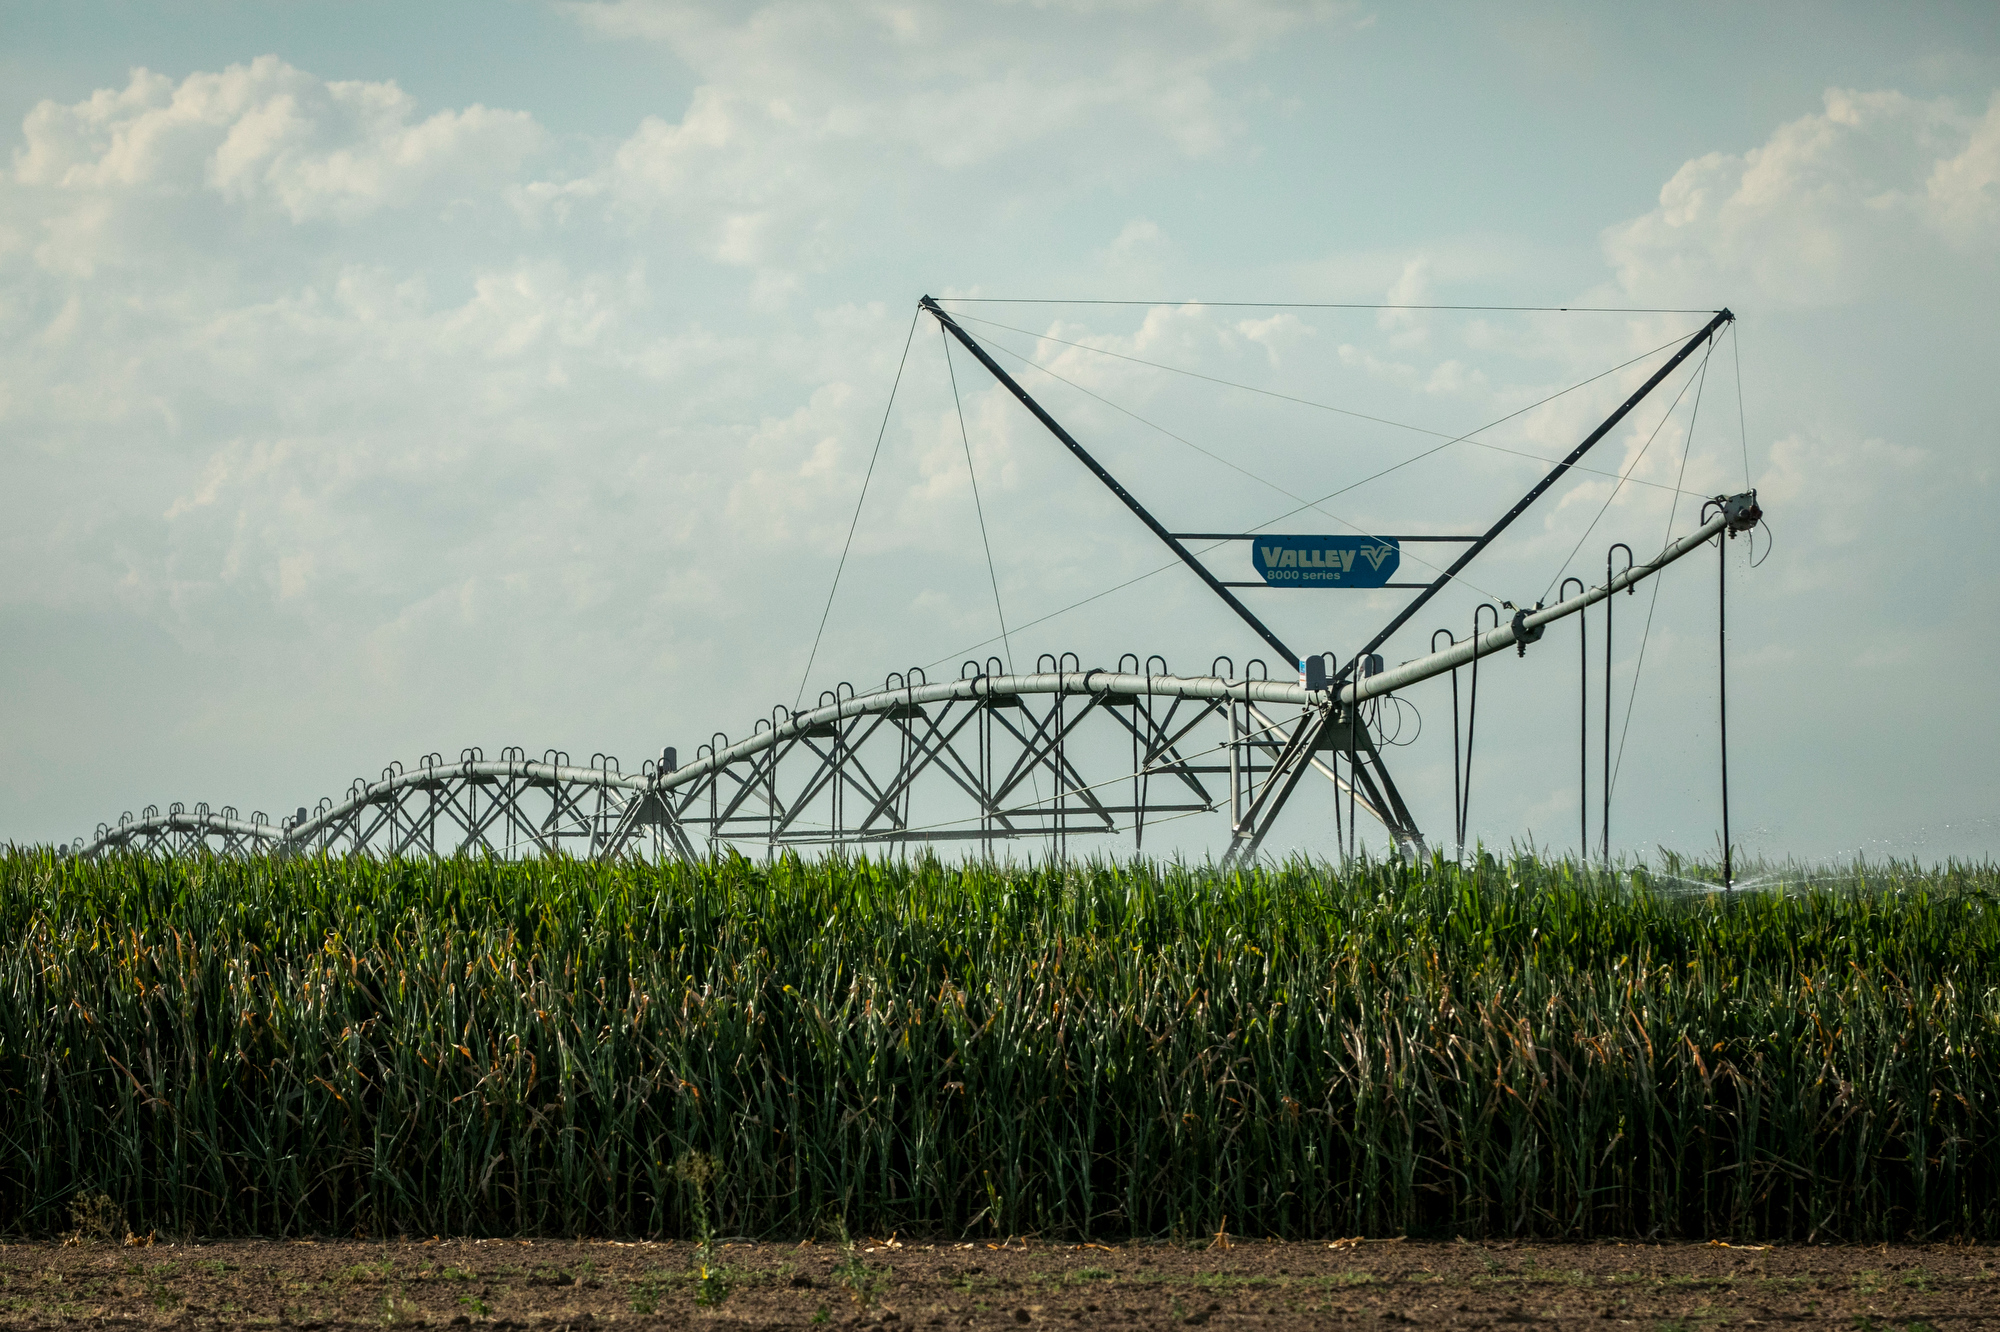 Irrigation Farming Corn Weld County